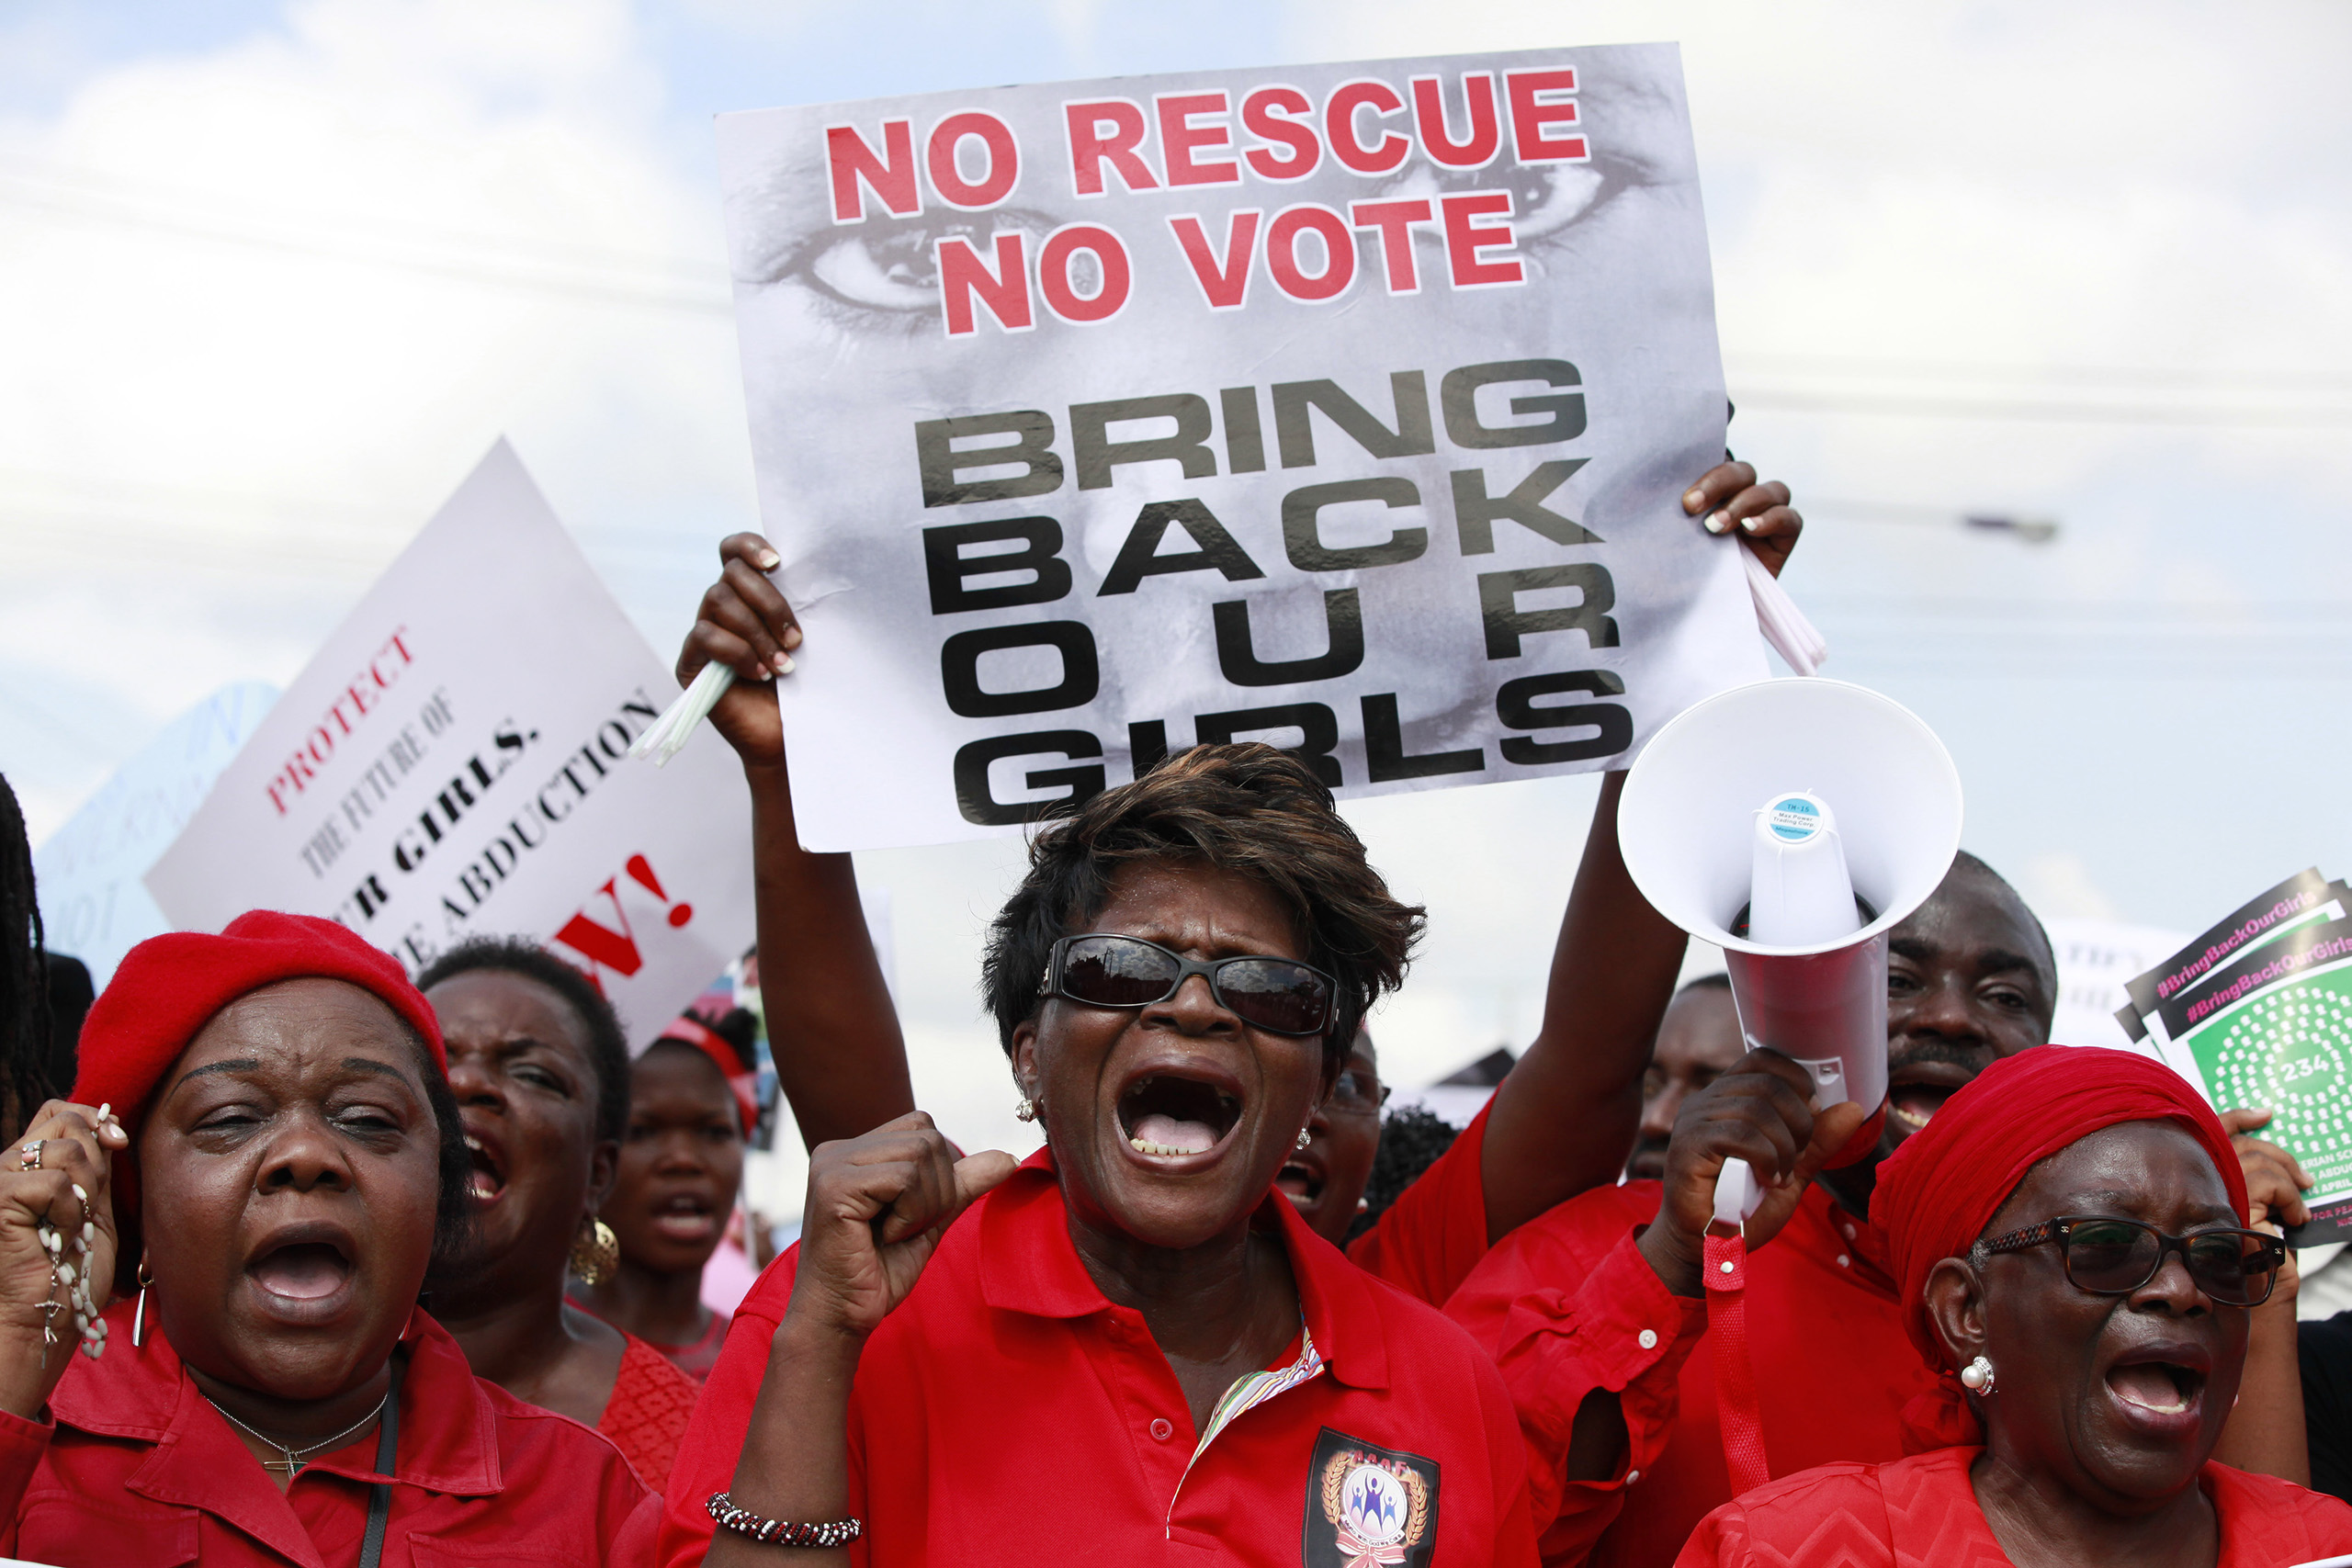 FILE- In this Monday, May 5, 2014 file photo, women attend a demonstration in Lagos calling on the government to rescue kidnapped school girls of a government secondary school in Chibok, Nigeria. A school mate says she cried with joy when she saw a Boko Haram video appearing to show some of Nigeria's kidnapped Chibok girls, with images of tearful parents recognizing their daughters, who have not been heard from since the mass abduction by the Islamic extremist group Boko Haram two years ago. (AP Photo/ Sunday Alamba, File)